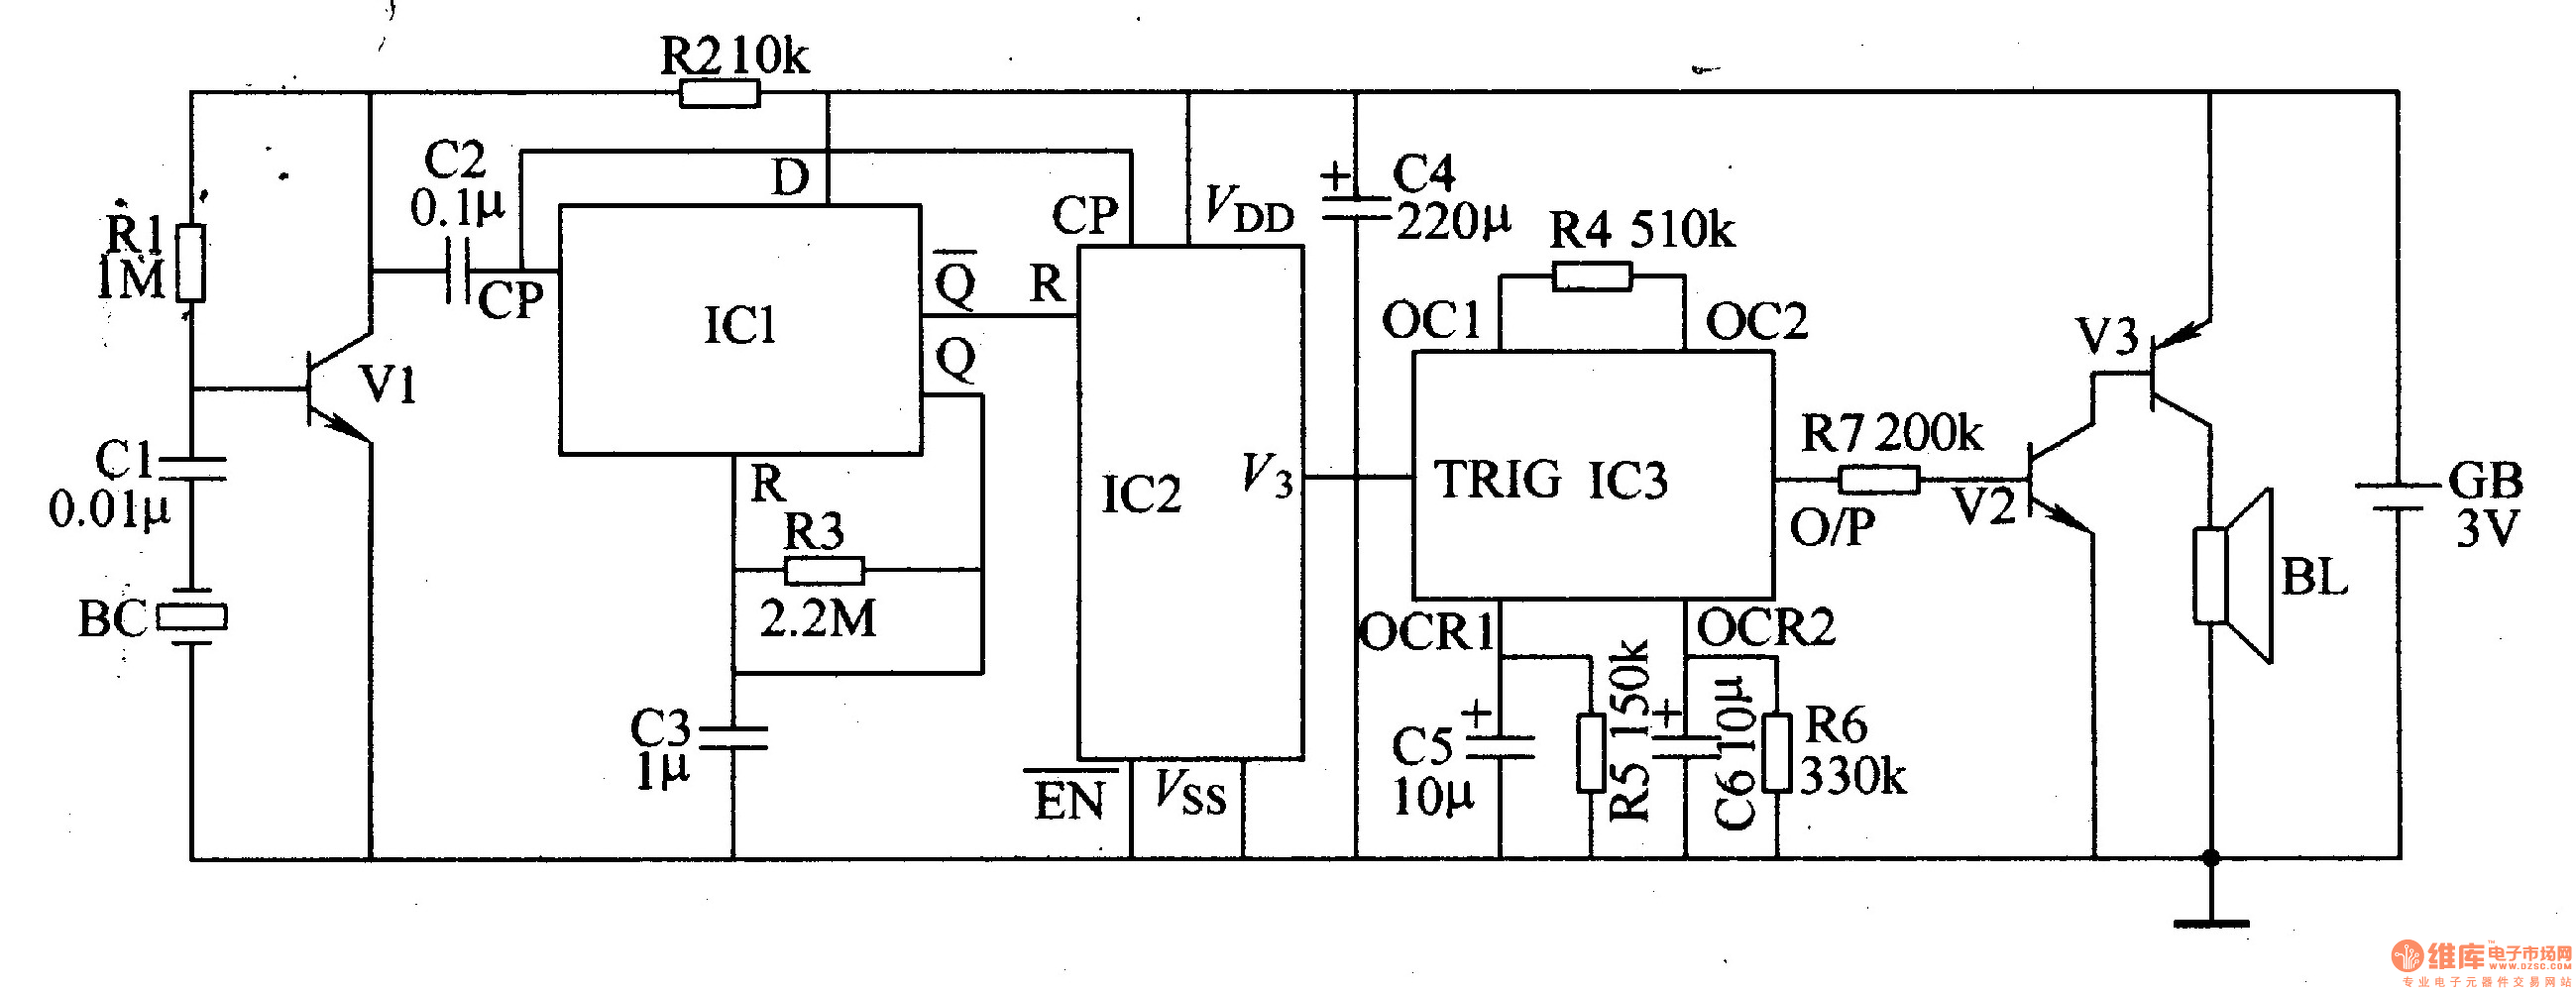 percussion electronic doorbell 1 - electrical equipment circuit - circuit diagram